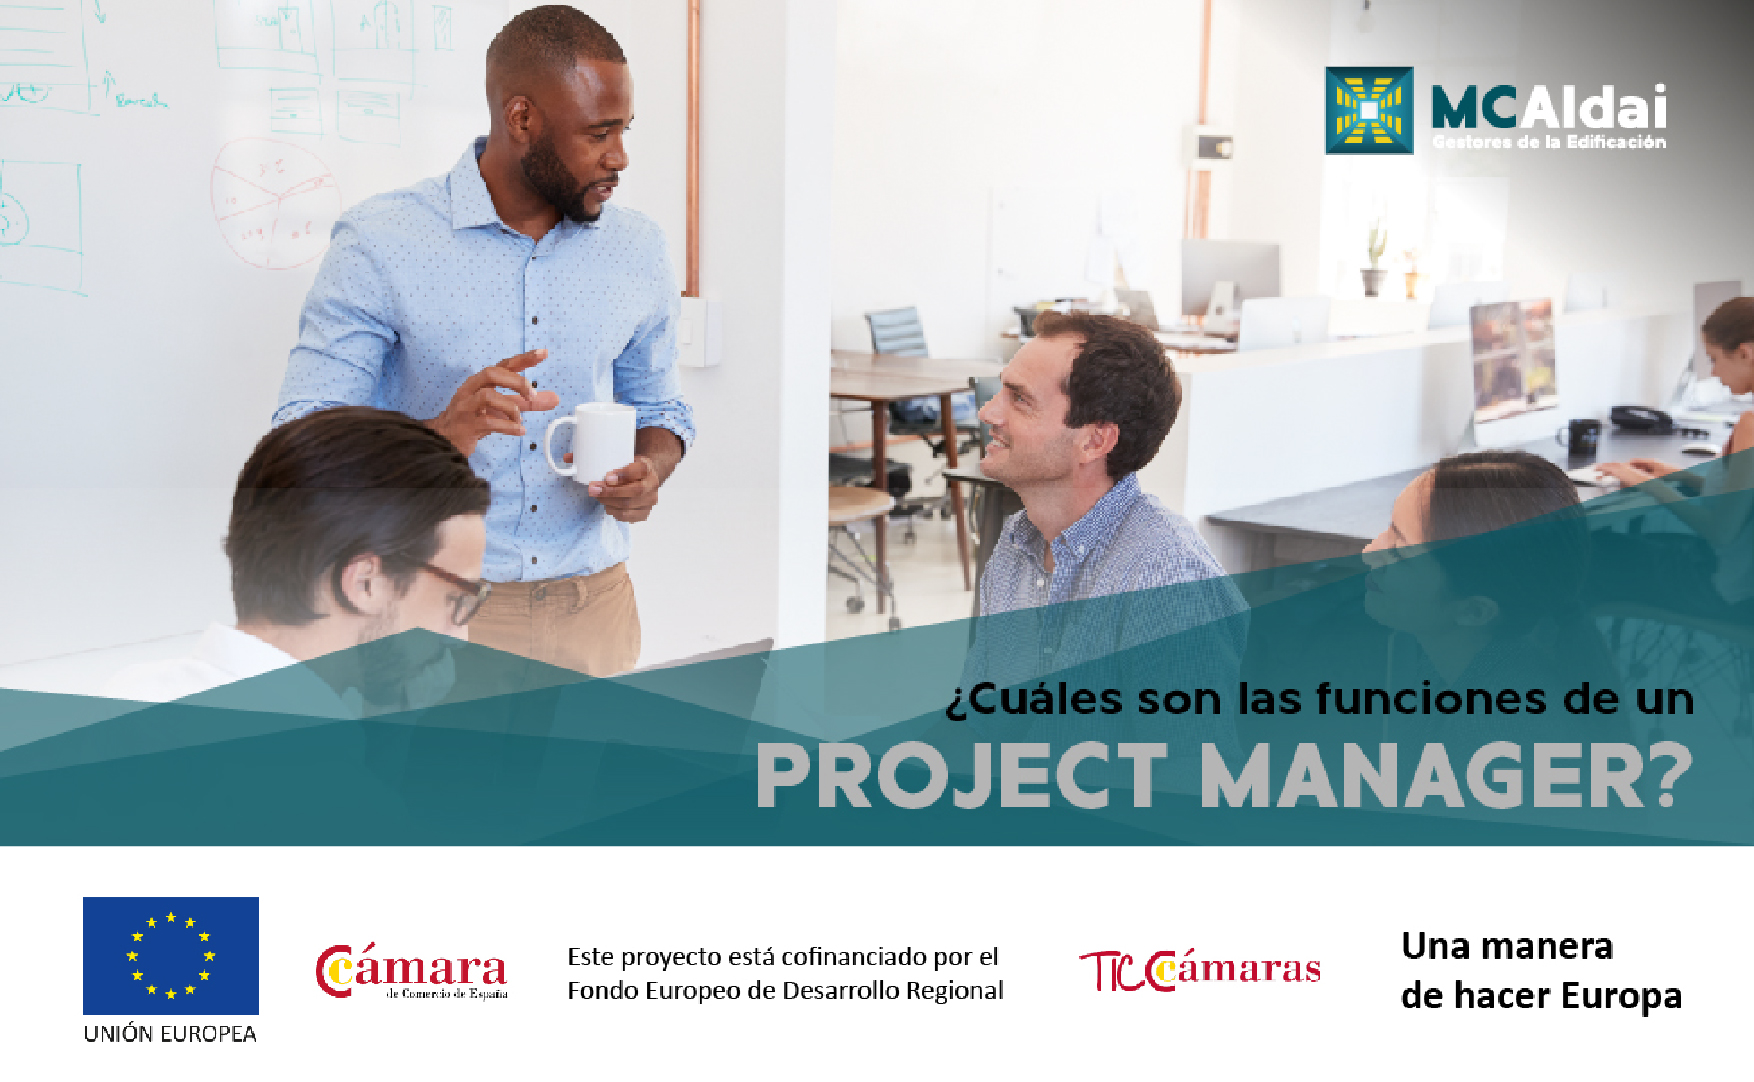 McAldai, Project Manager